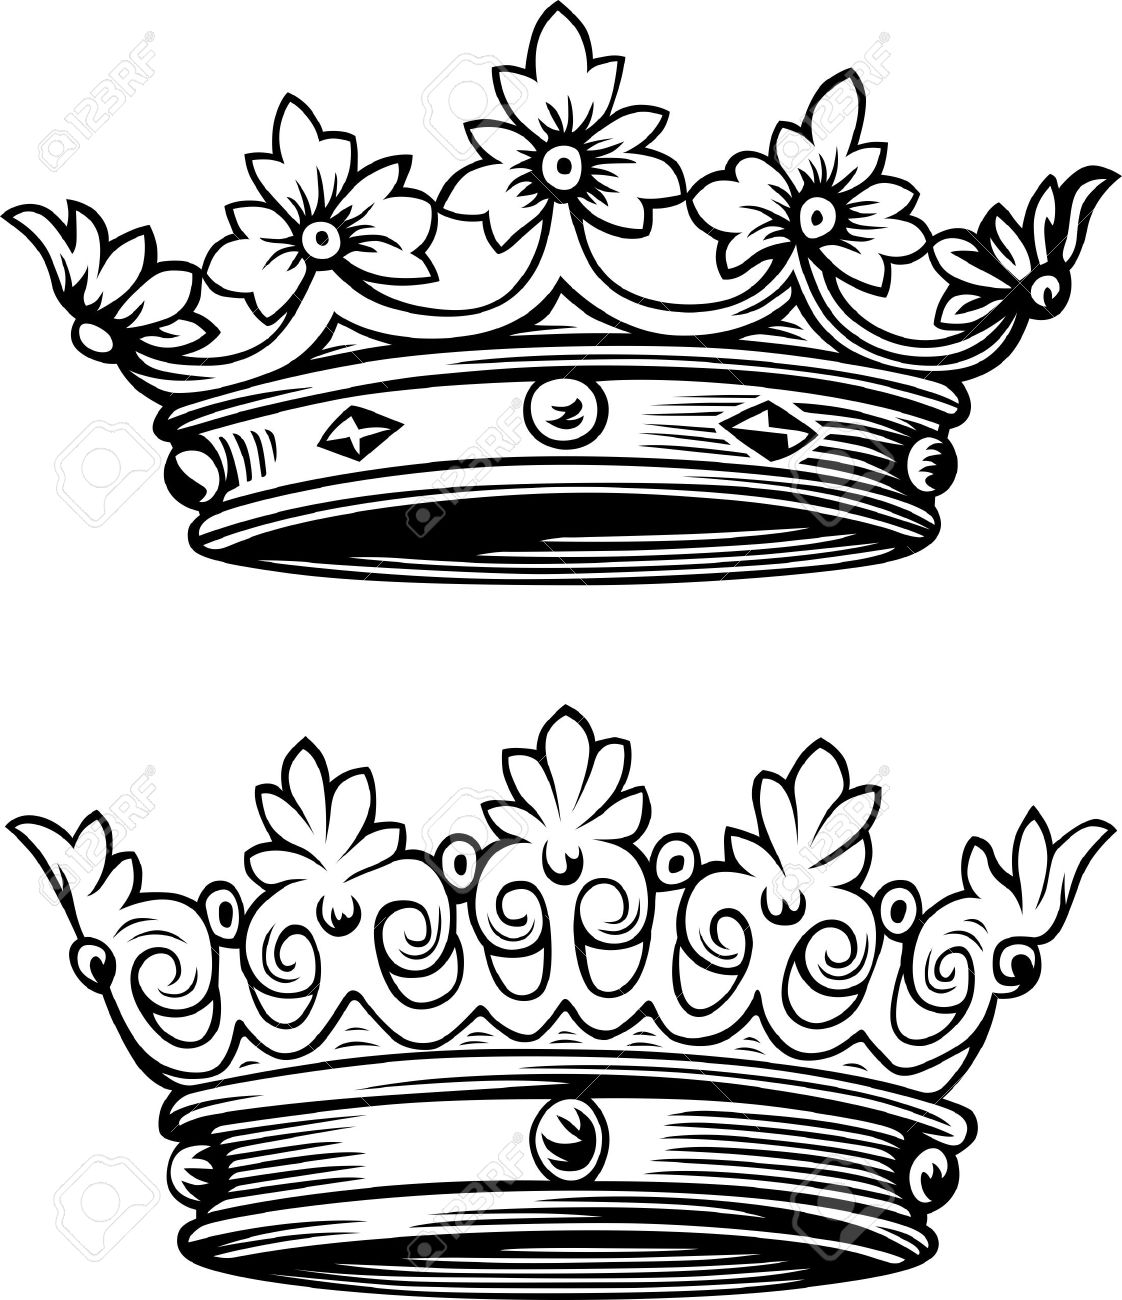 King And Queen Crown Coloring Pages - Bltidm